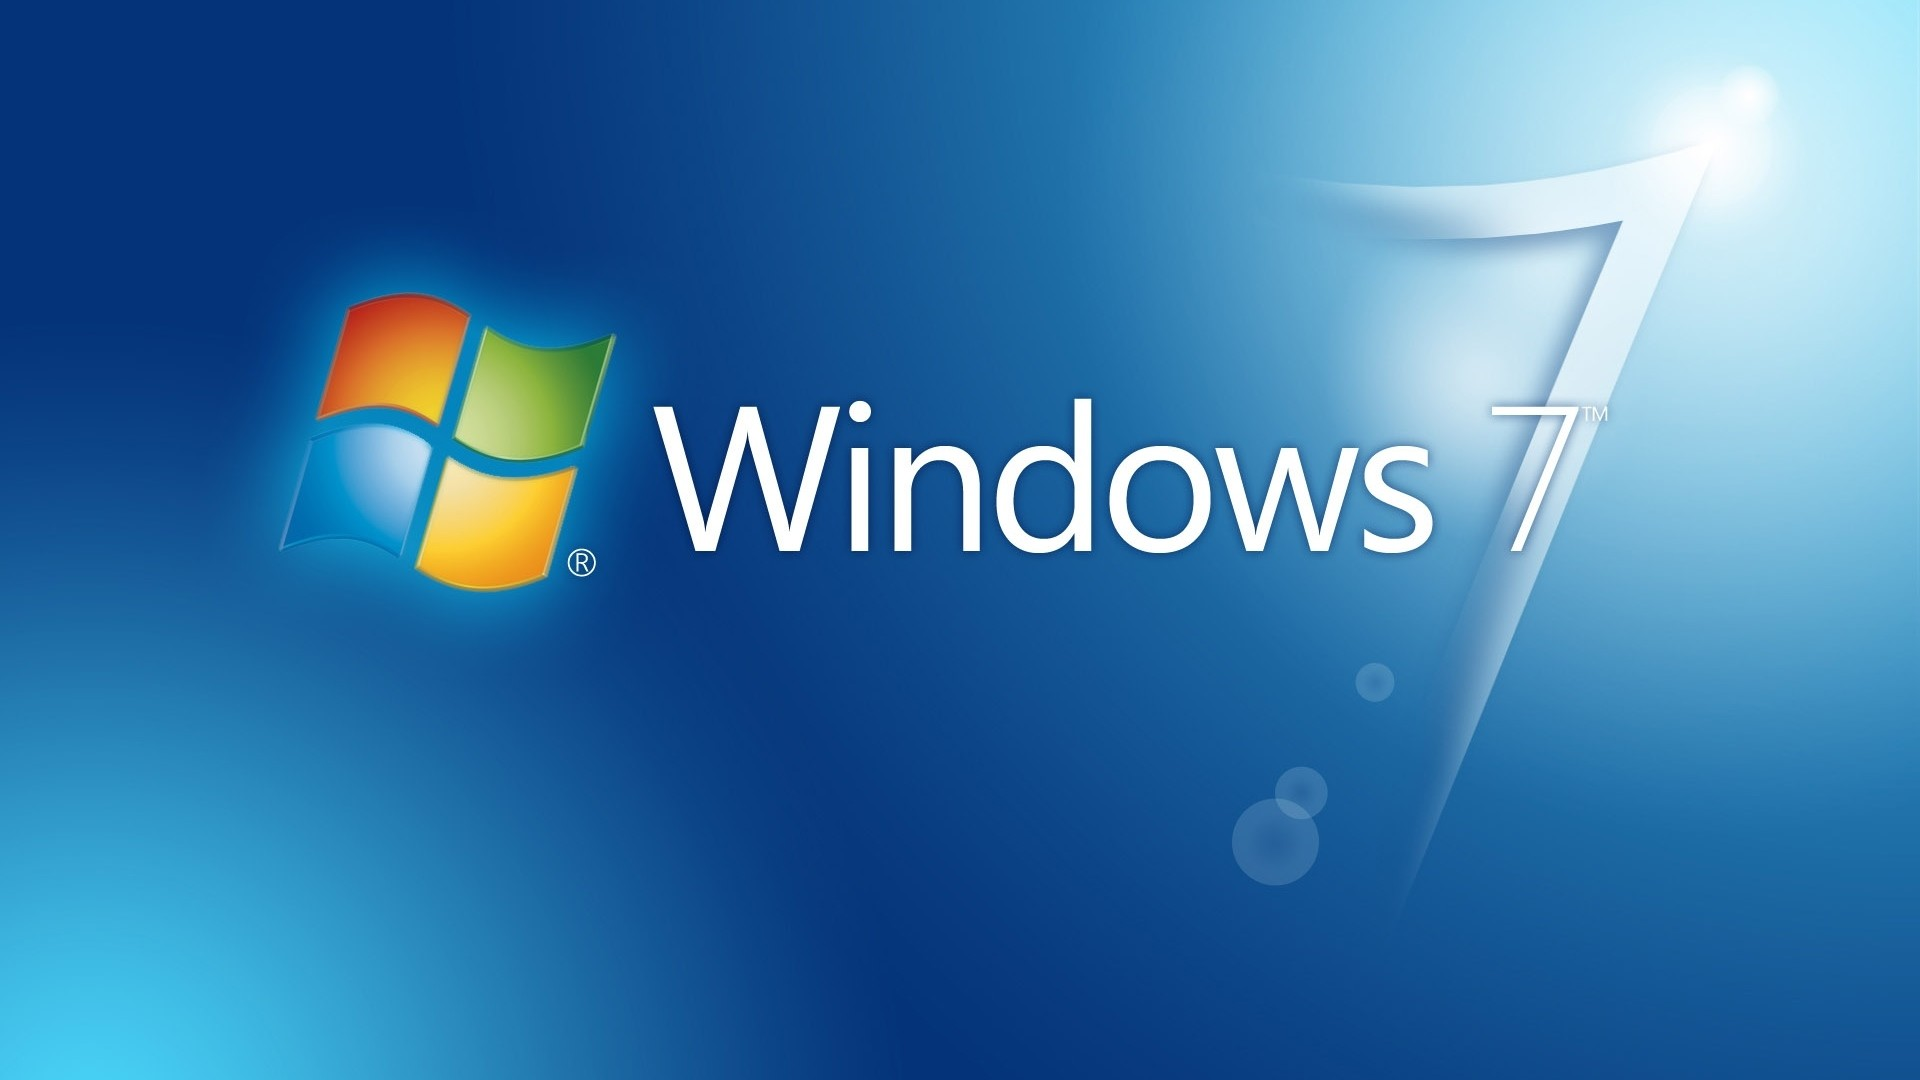 Wallpapers For Windows 7 Wallpapertag